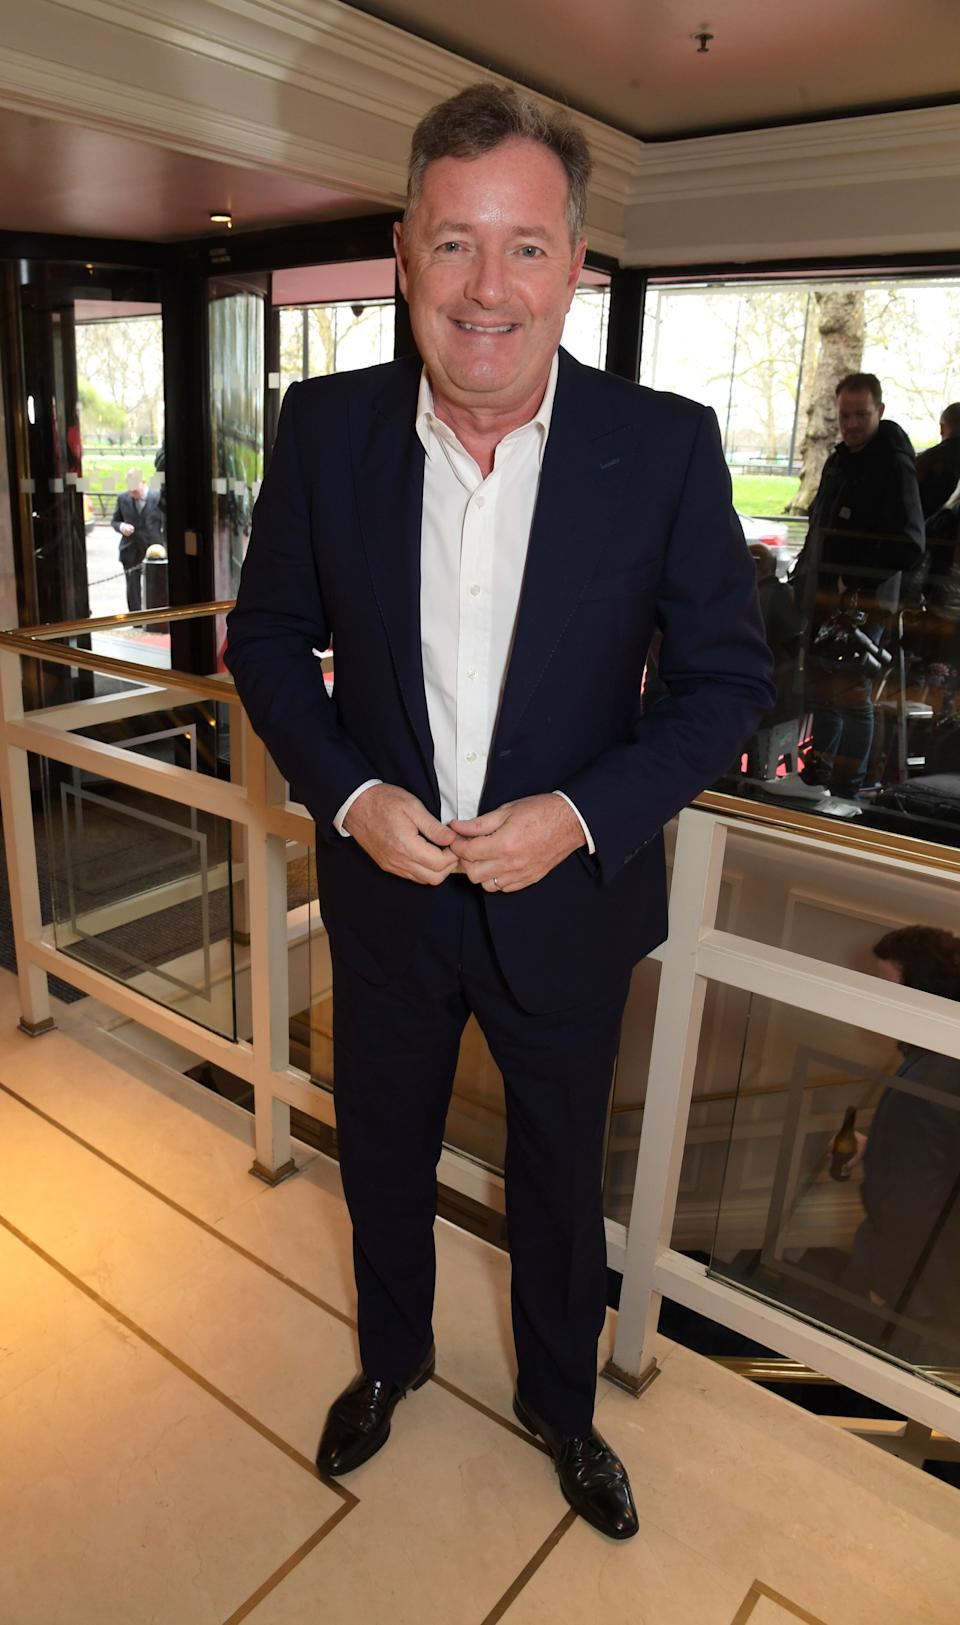 Piers Morgan at the TRIC Awards in March (Photo: David M. Benett via Getty Images)